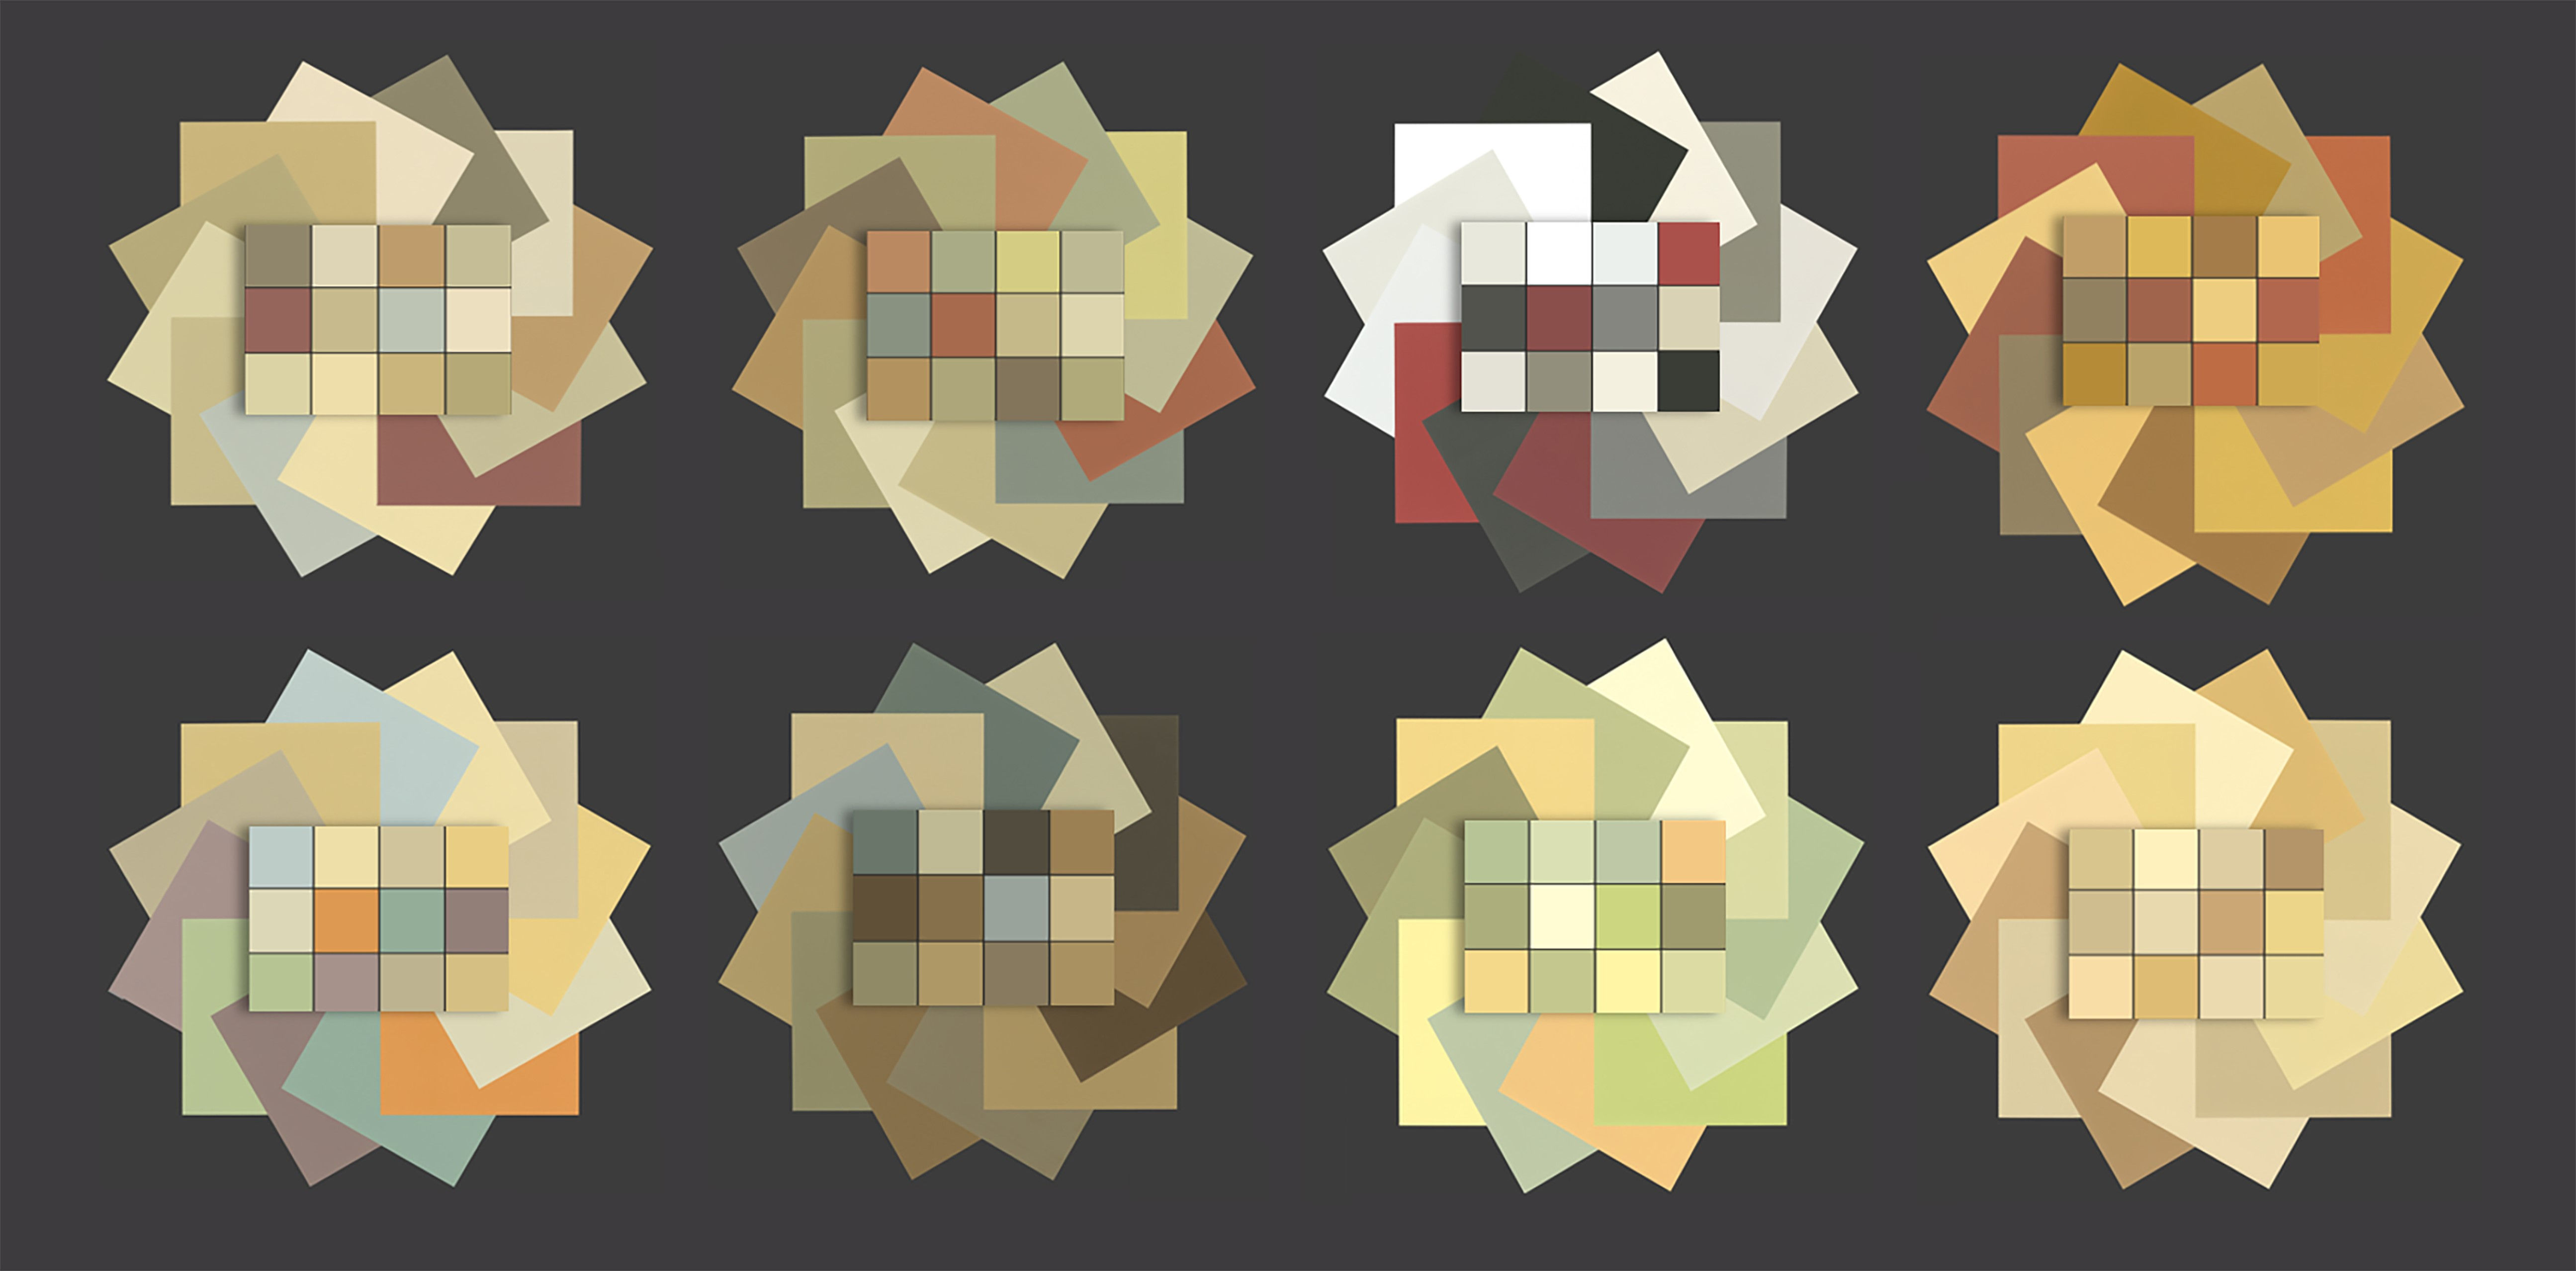 Dwelling Palettes by Color in Space